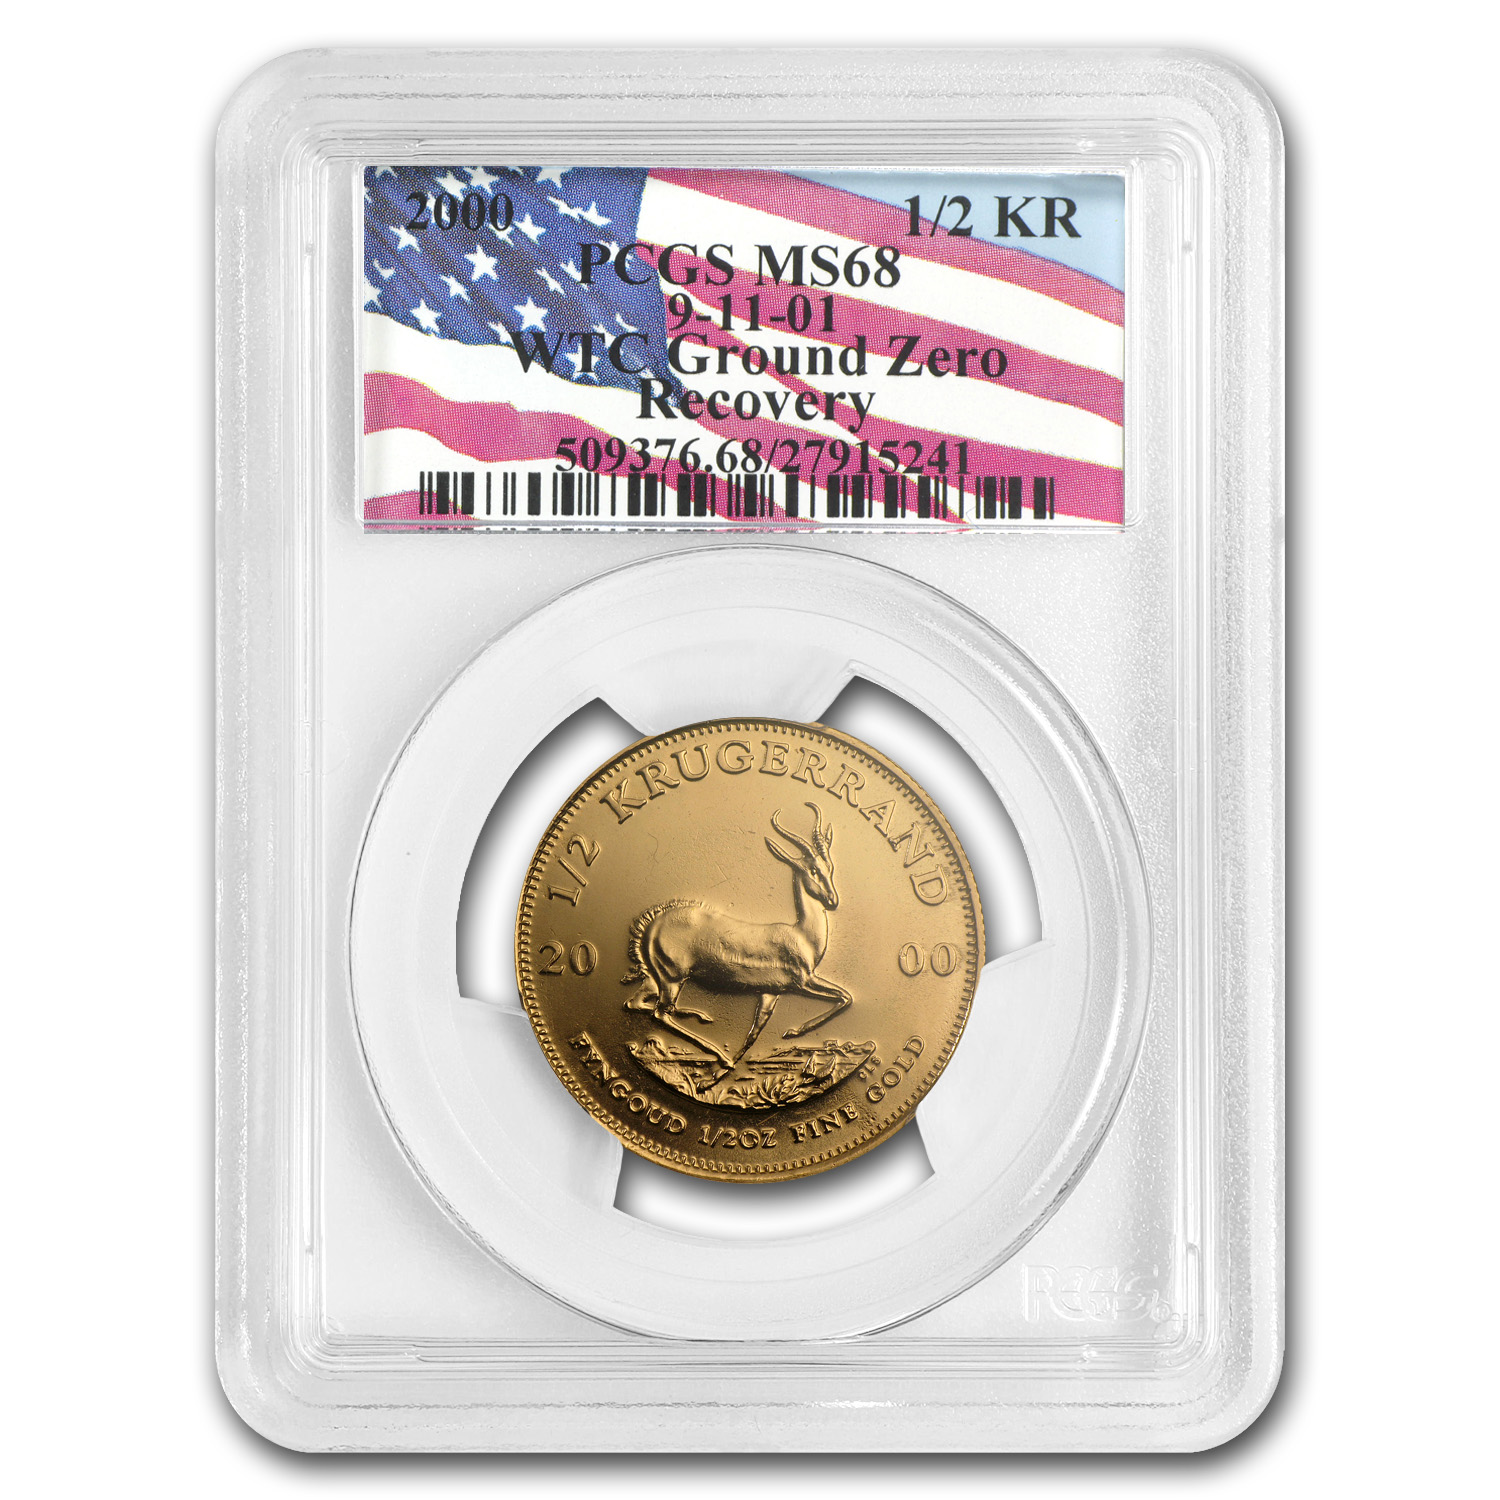 2000 1/2 oz Gold South African Krugerrand PCGS MS-68 (WTC)